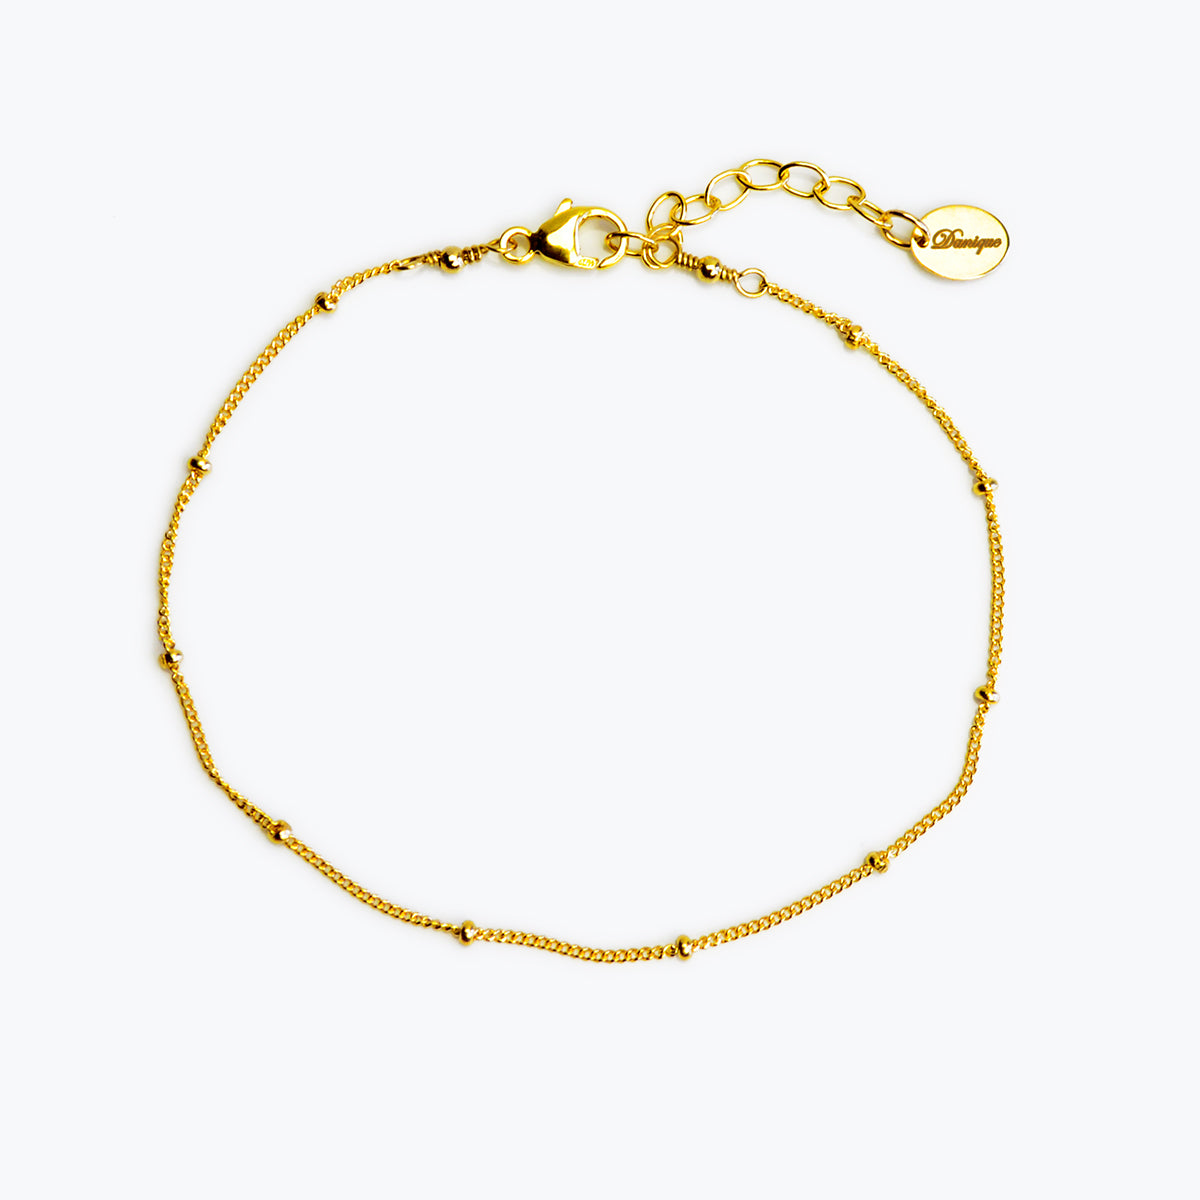 e484a73a7 Delicate Dew Drops Bracelet in Gold, Rose Gold, and Sterling Silver -  Danique Jewelry